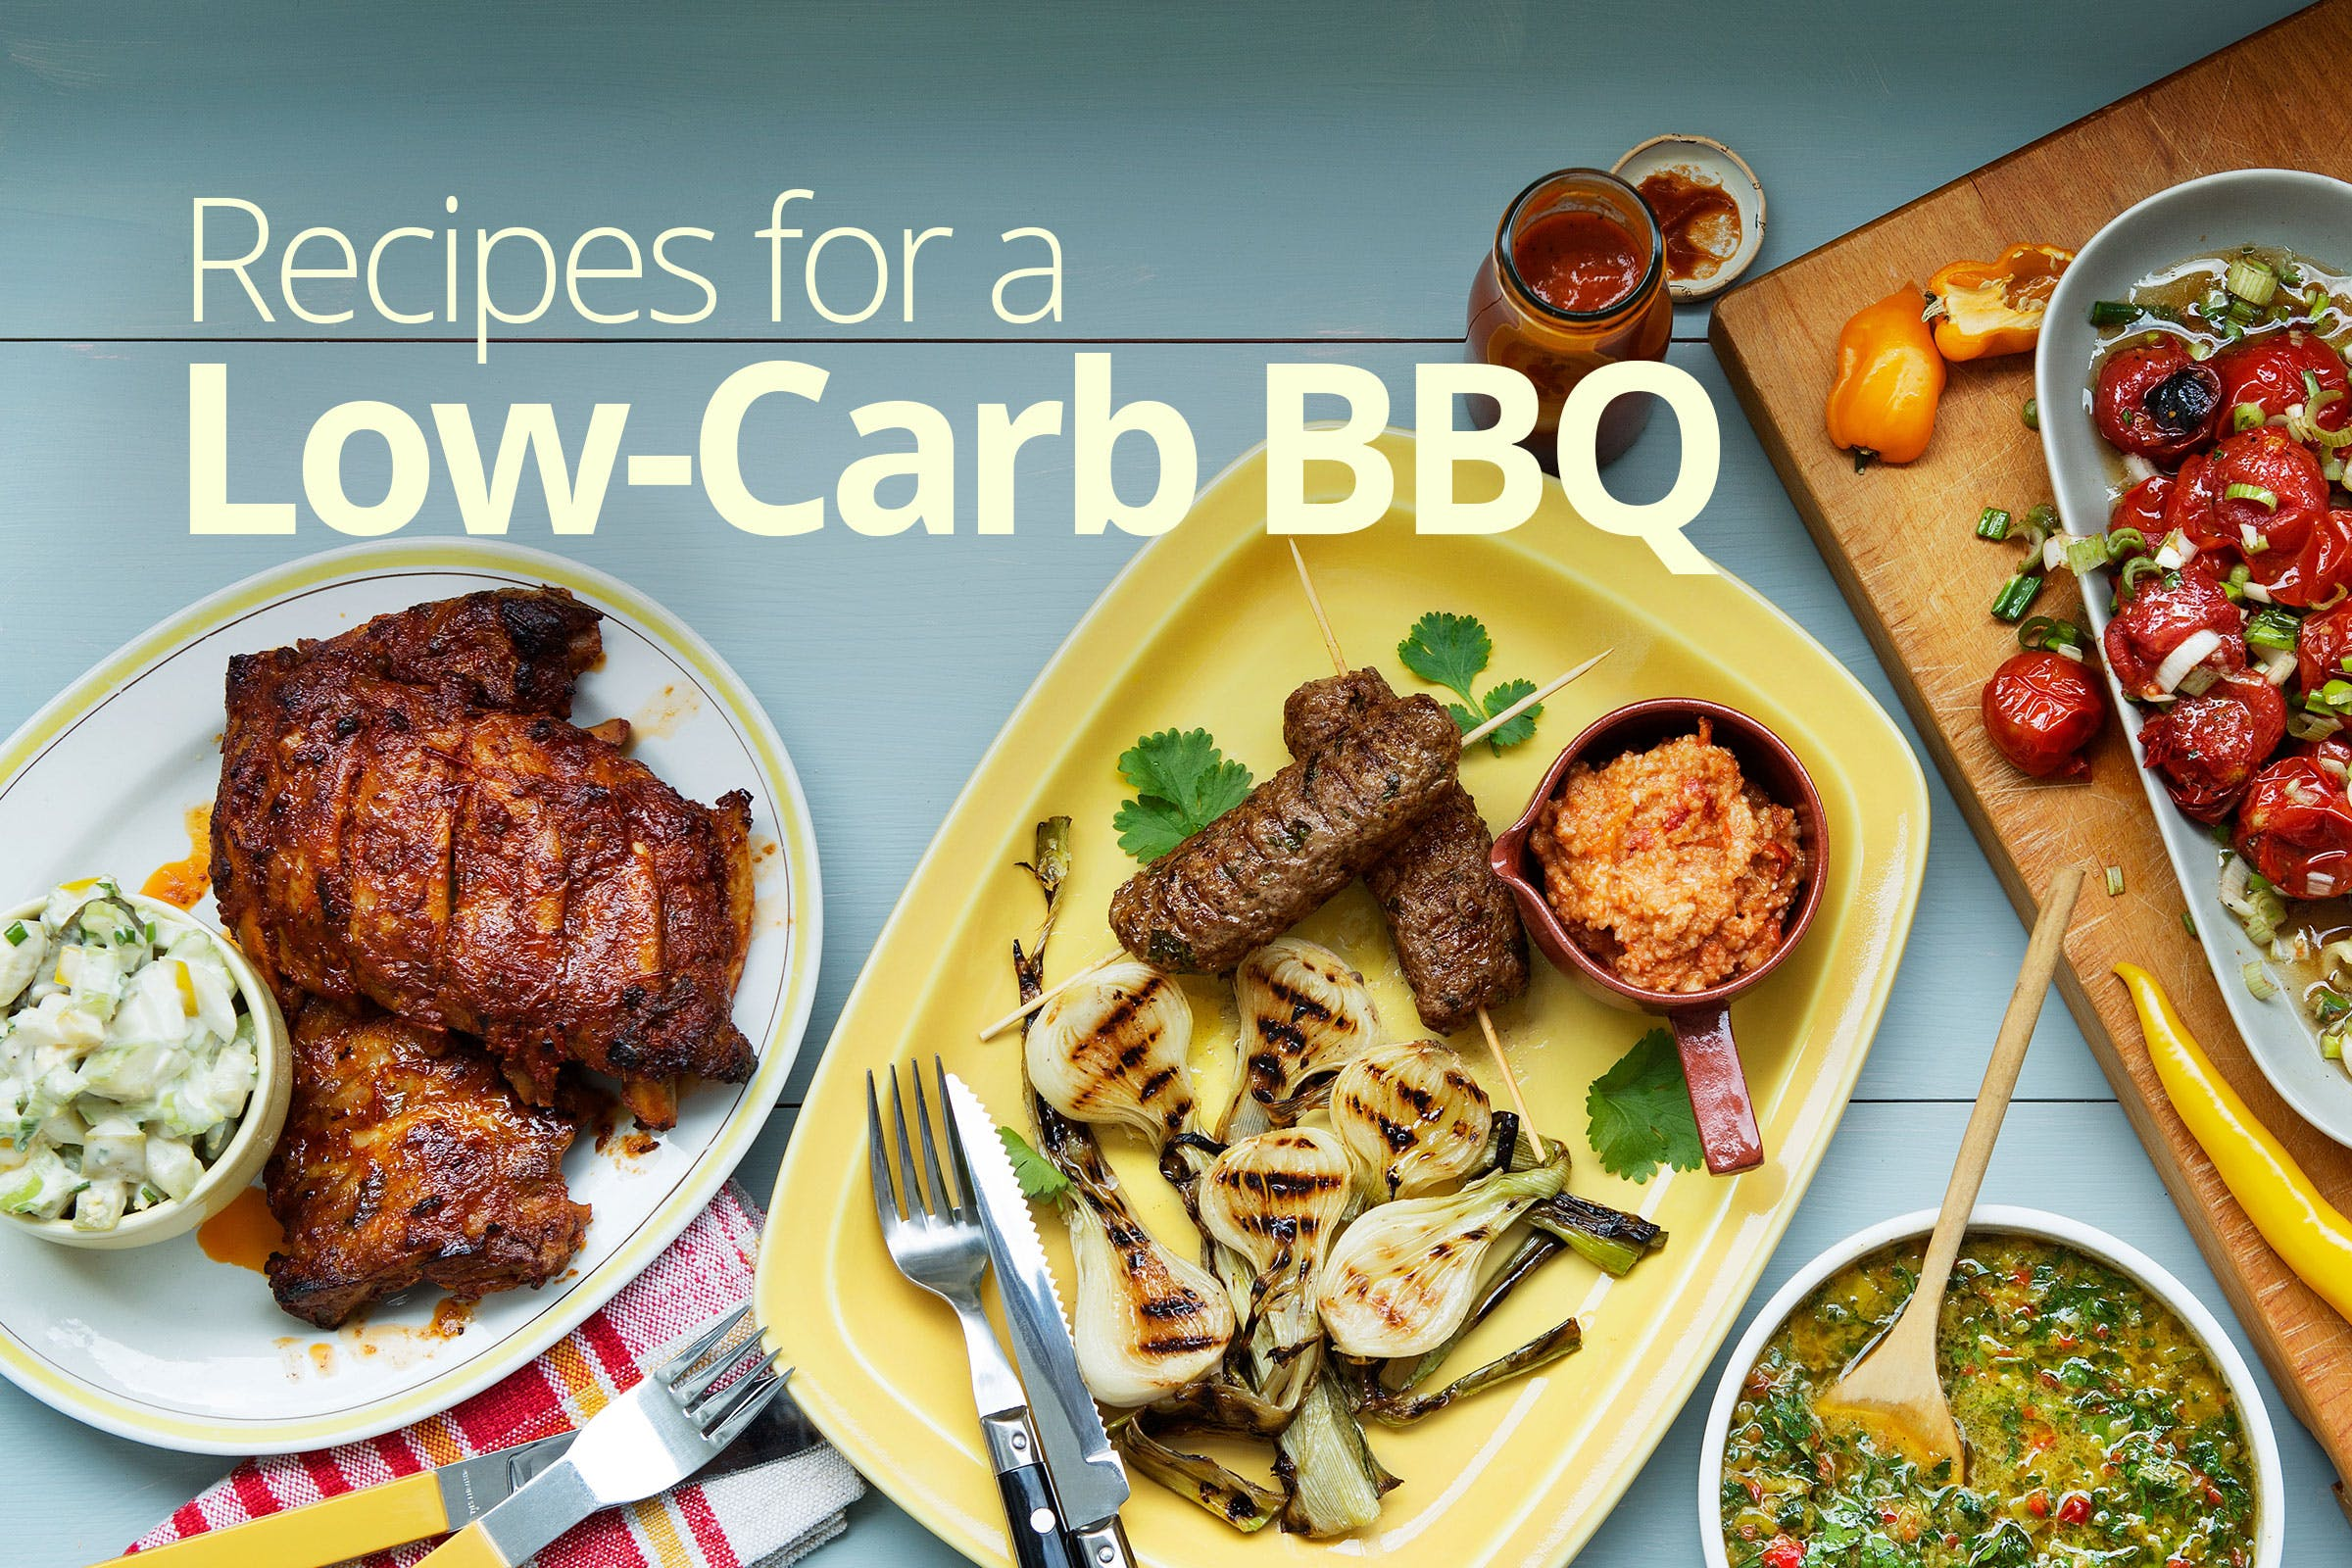 Celebrate Summer with a Low-Carb and Keto Barbecue